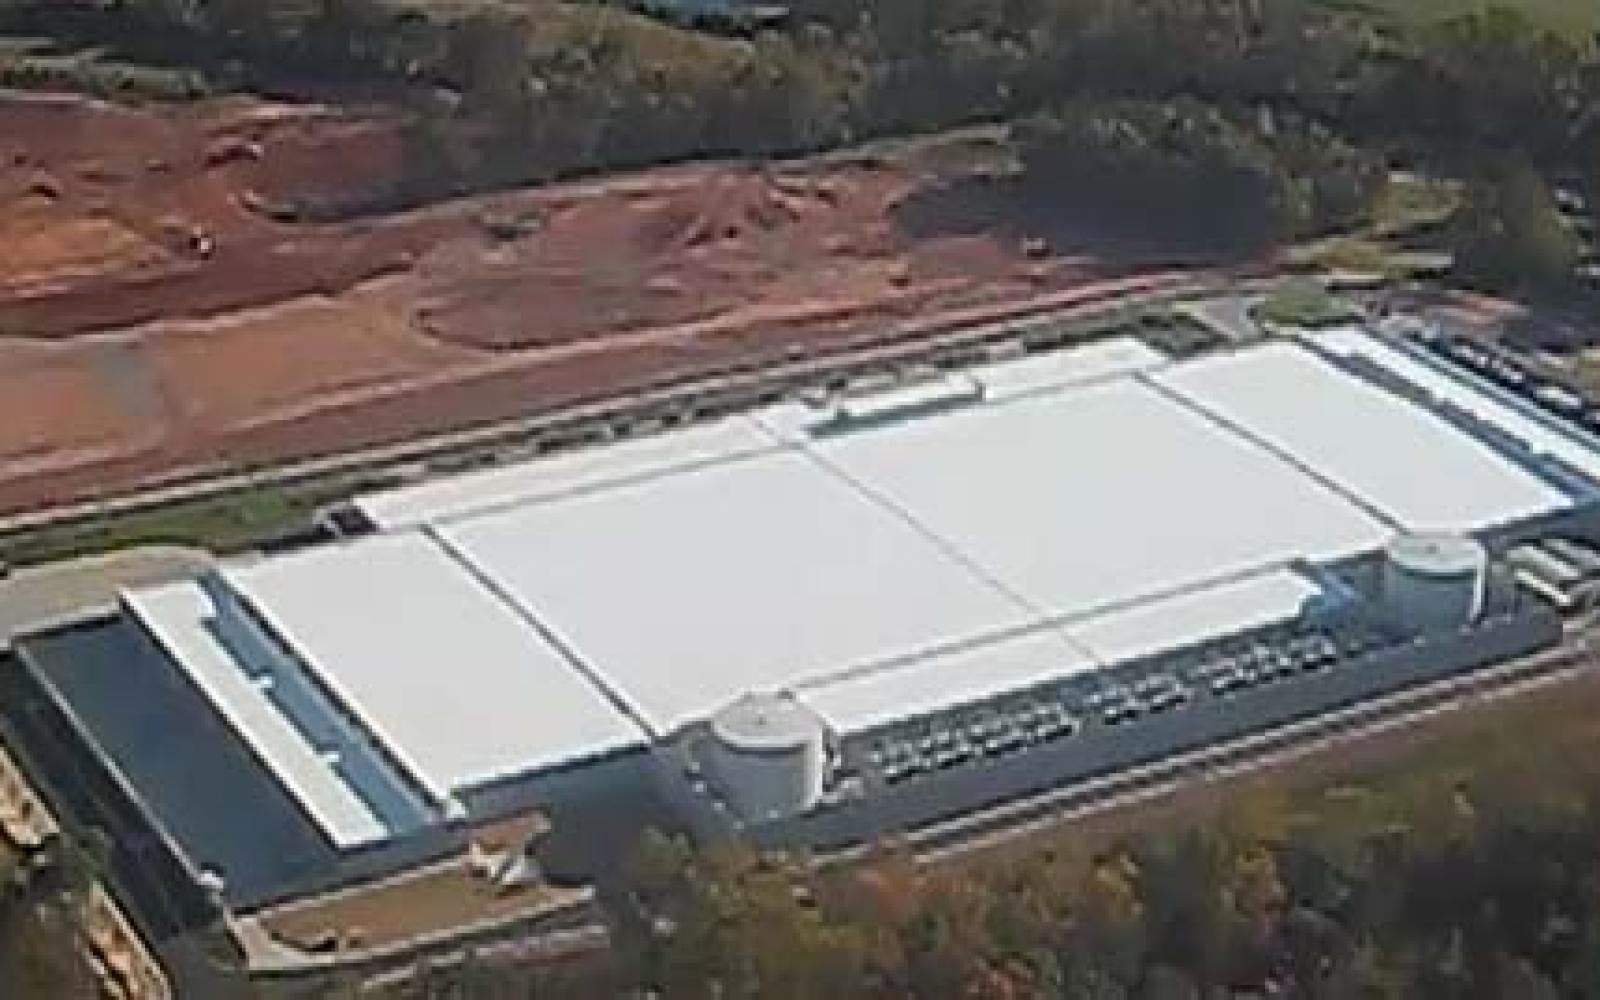 Apple plans to expand Maiden, NC datacenter with new facility and offices